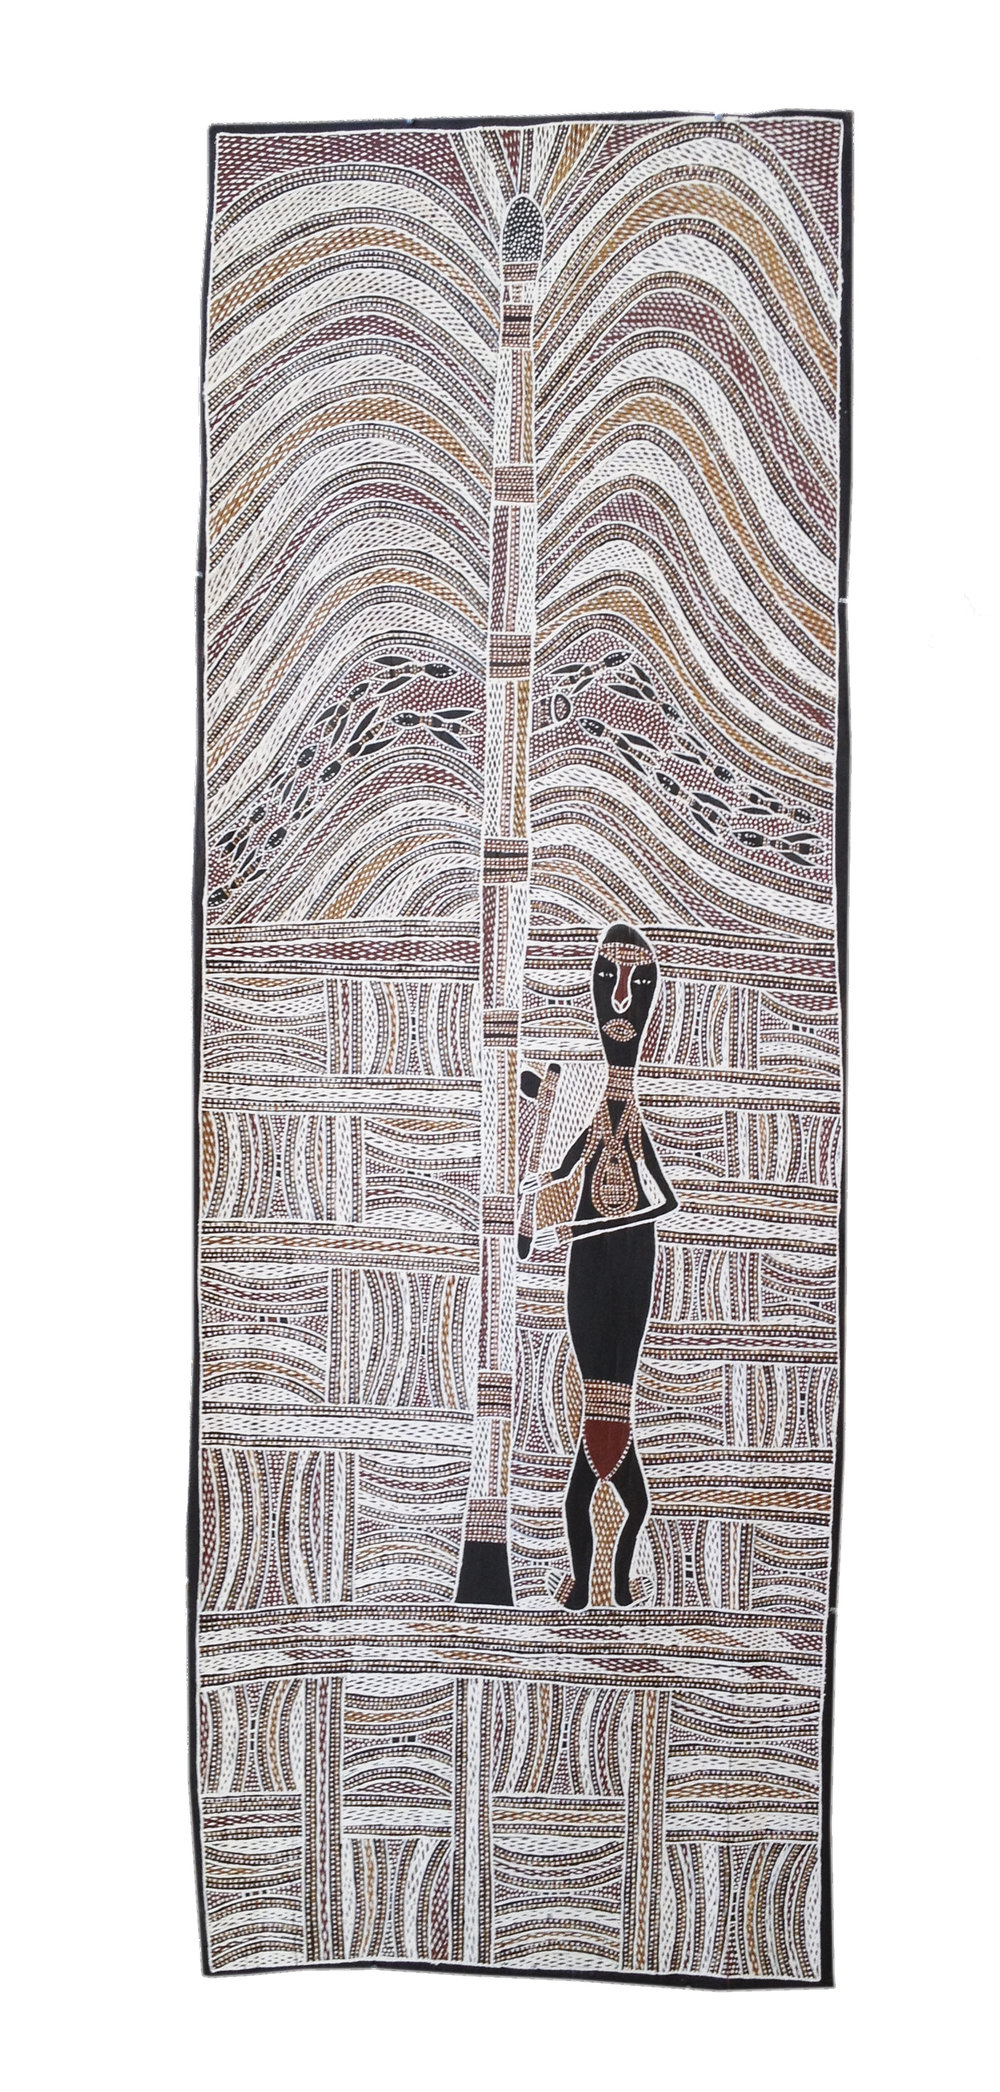 Wolpa Wanambi  Untitled  Natural earth pigments on bark 45 x 120cm  Buku Larrnggay Mulka #4375M   EMAIL INQUIRY